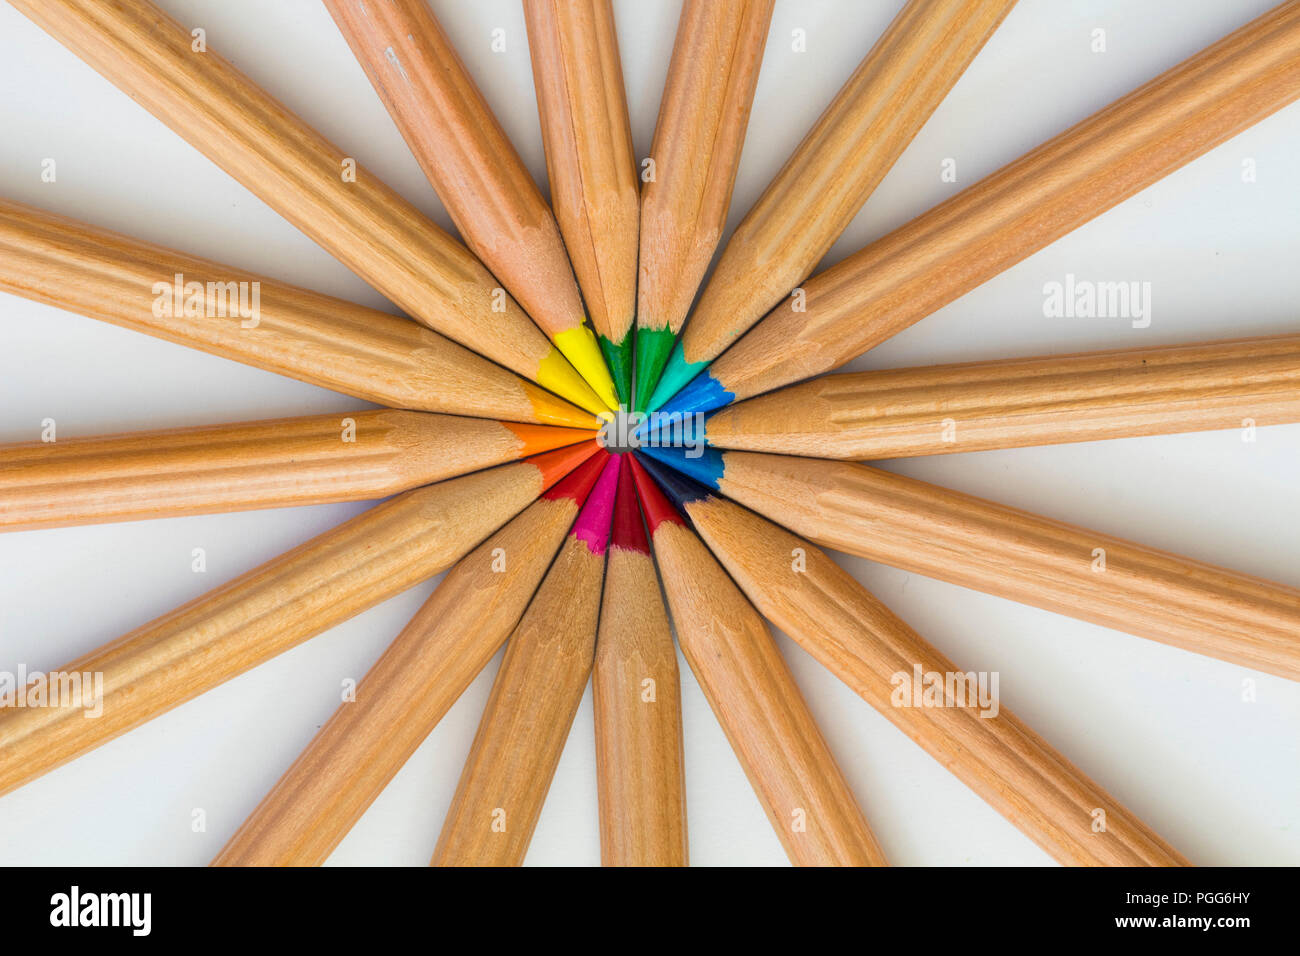 Color pencils ordered on white cardboard - Stock Image